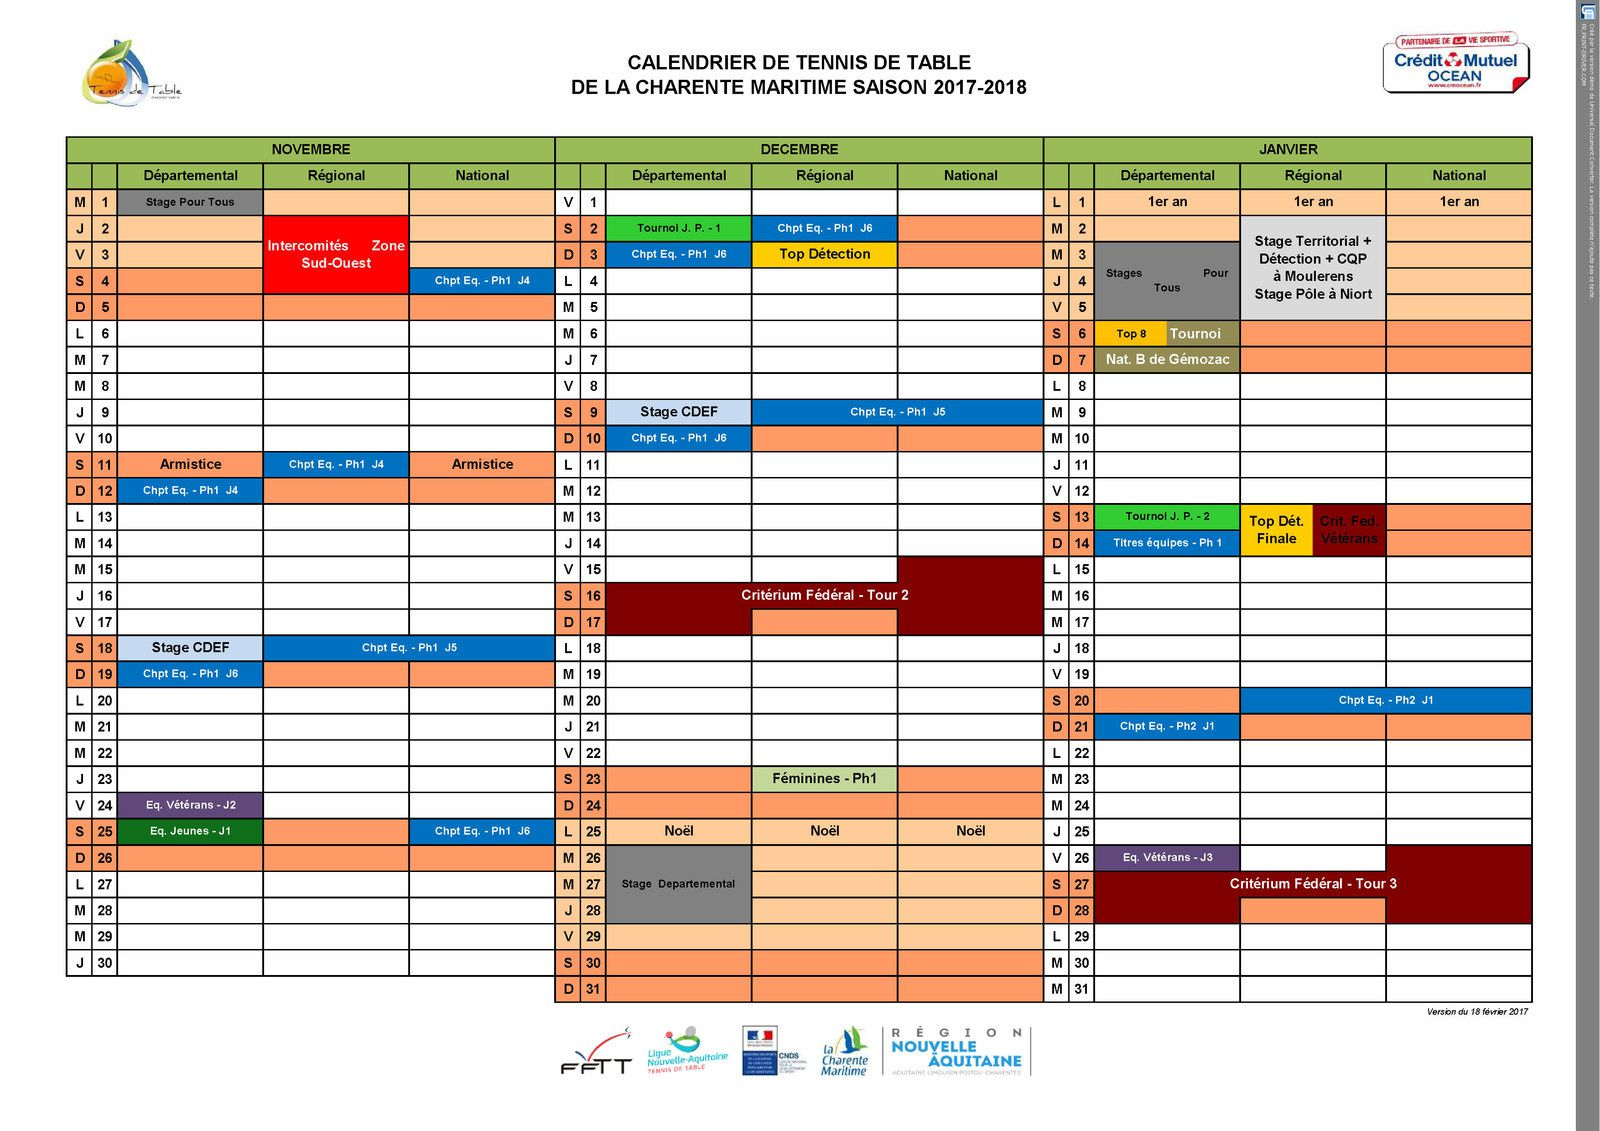 9/ LES CALENDRIERS 2017-2018